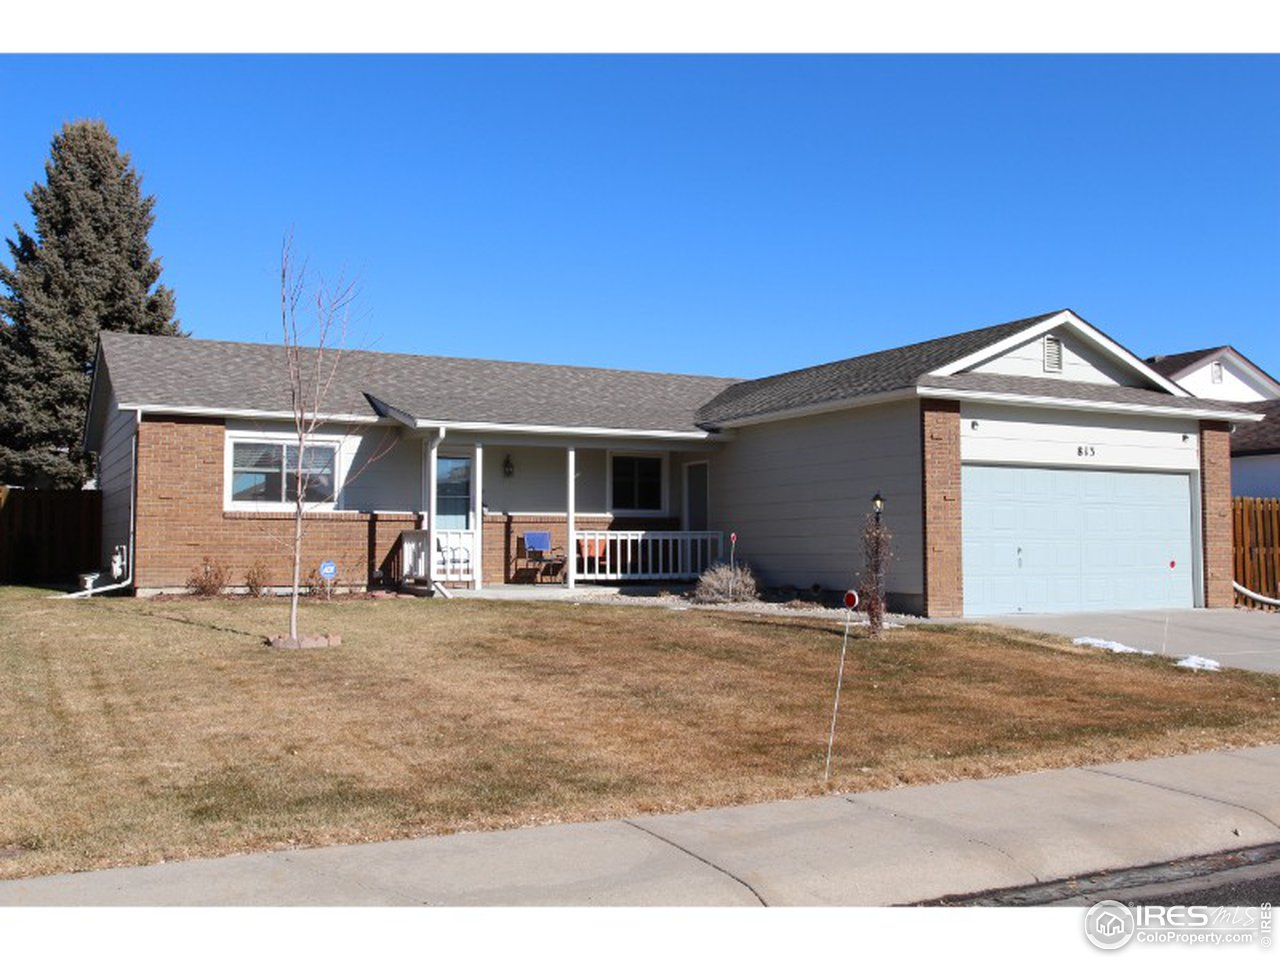 813 E 34th St Loveland Home Listings - Team Cook Real Estate